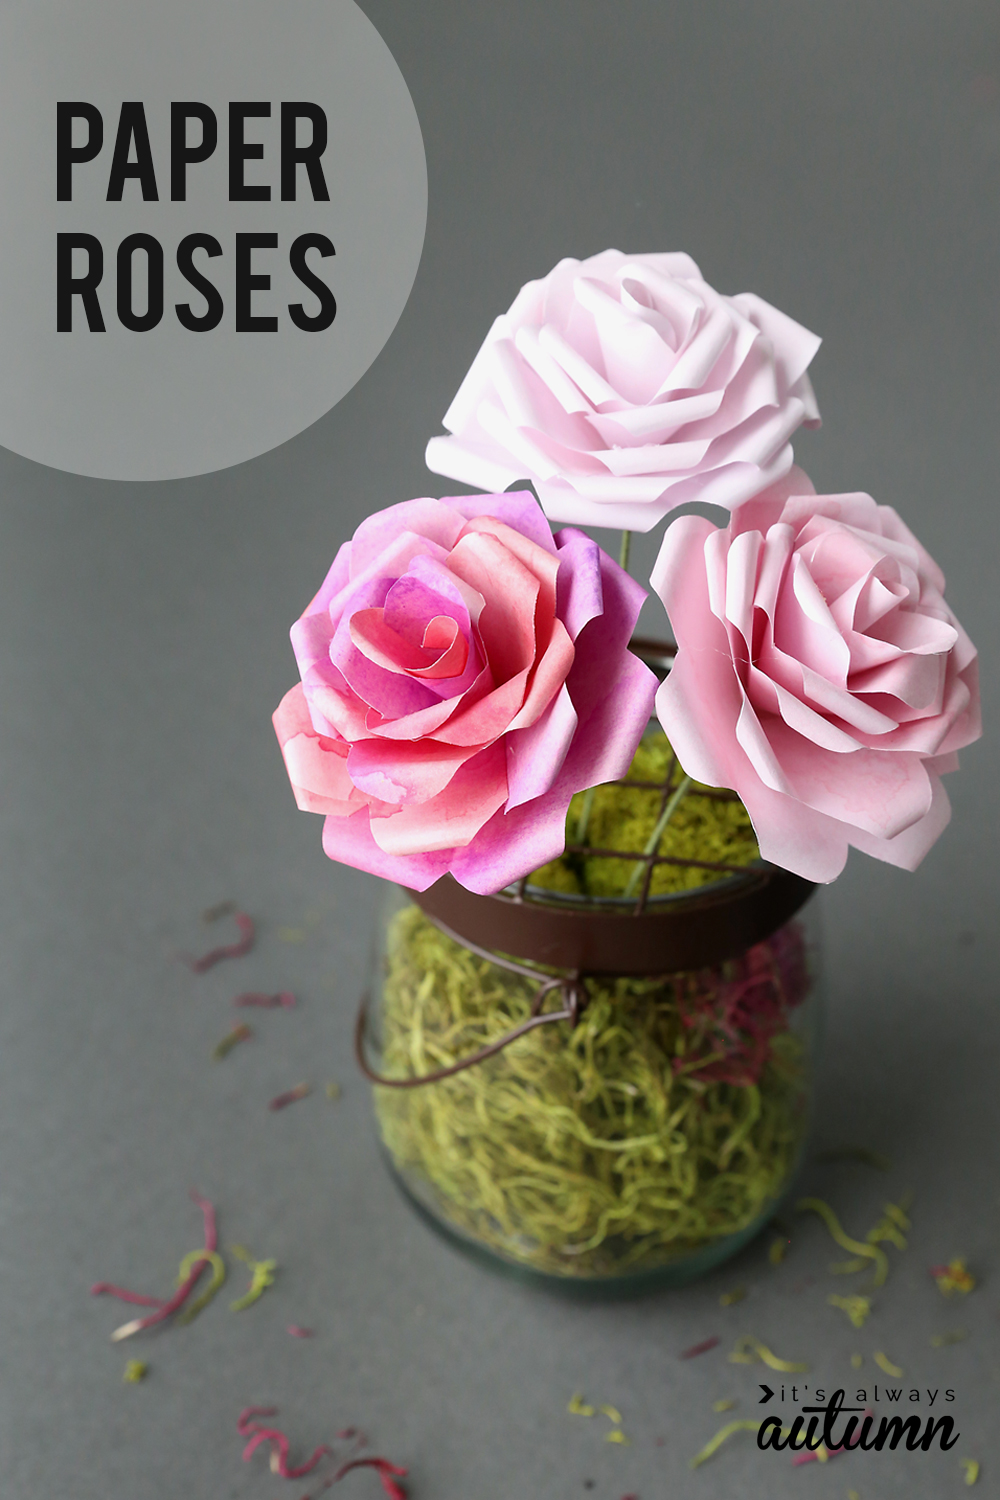 graphic about Roses Templates Printable referred to as Create stunning paper roses with this no cost paper rose template